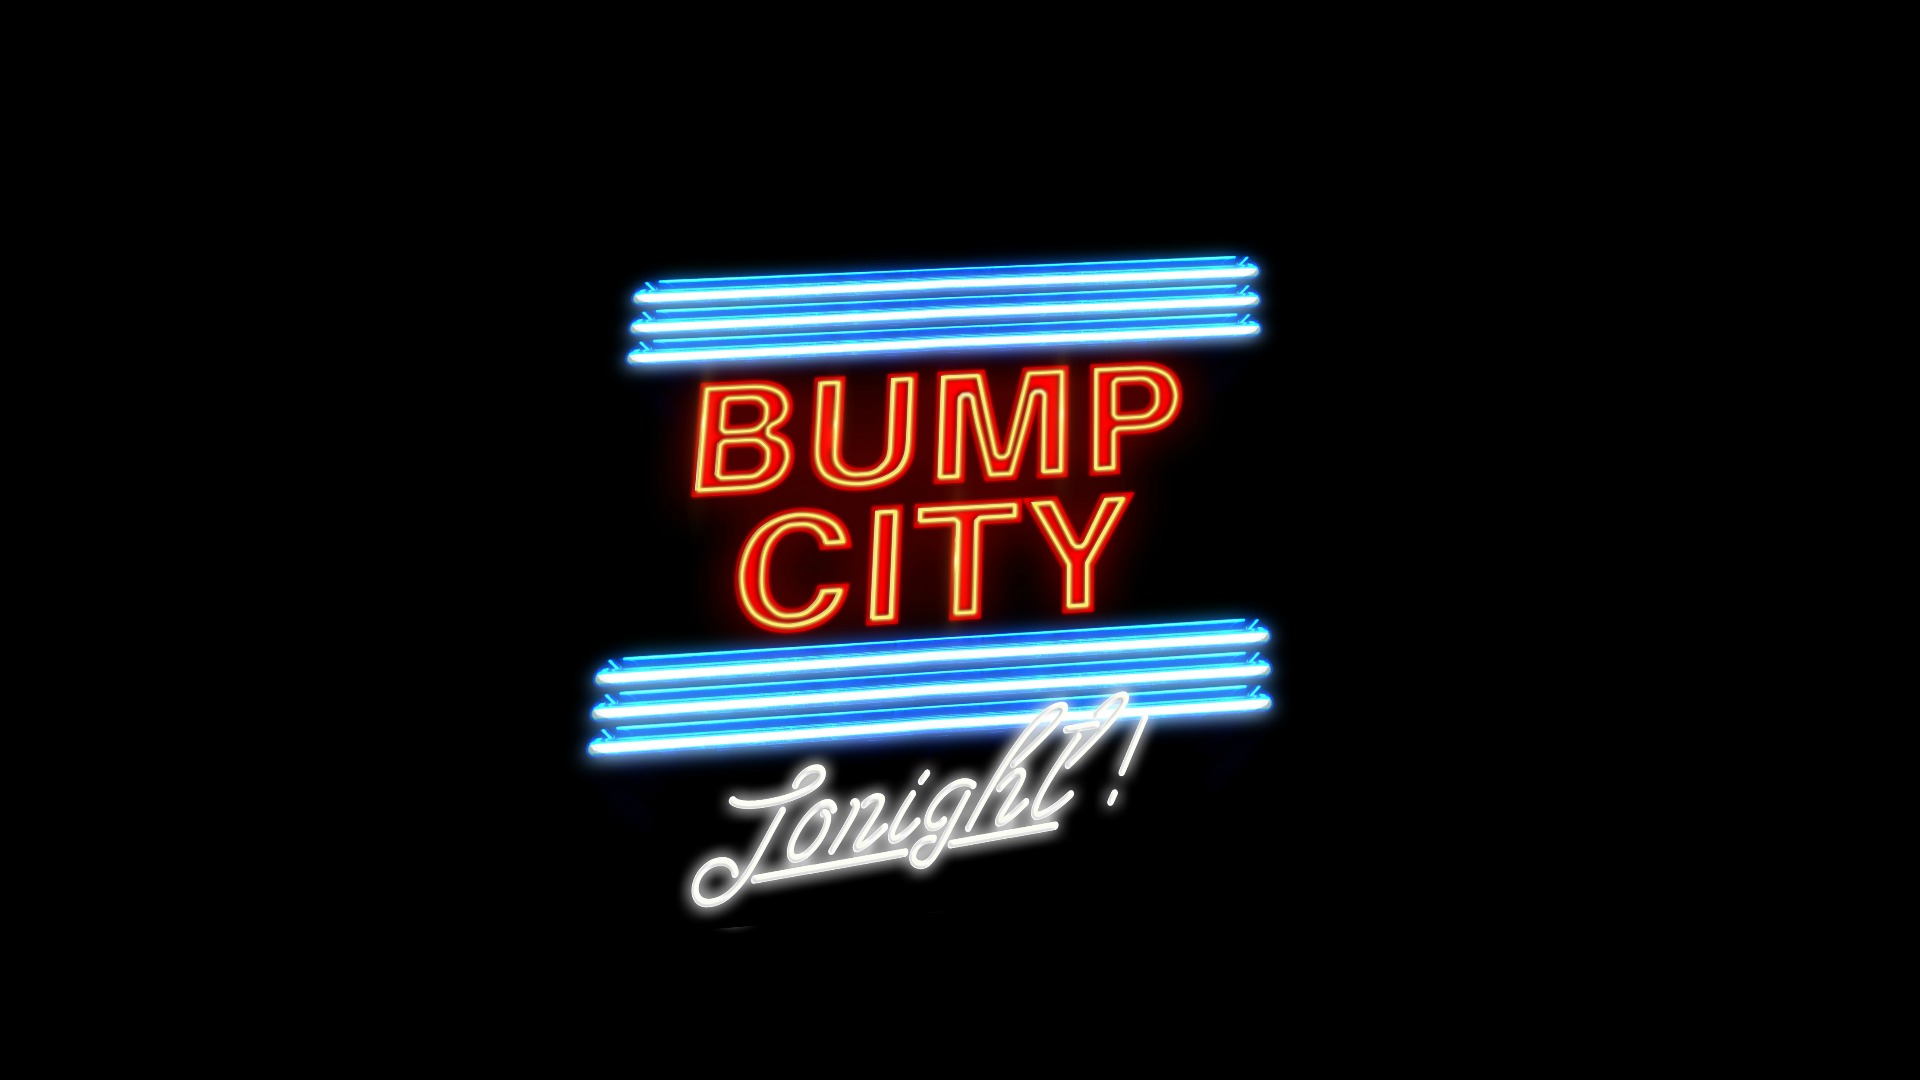 Bump City Tour | 2019!